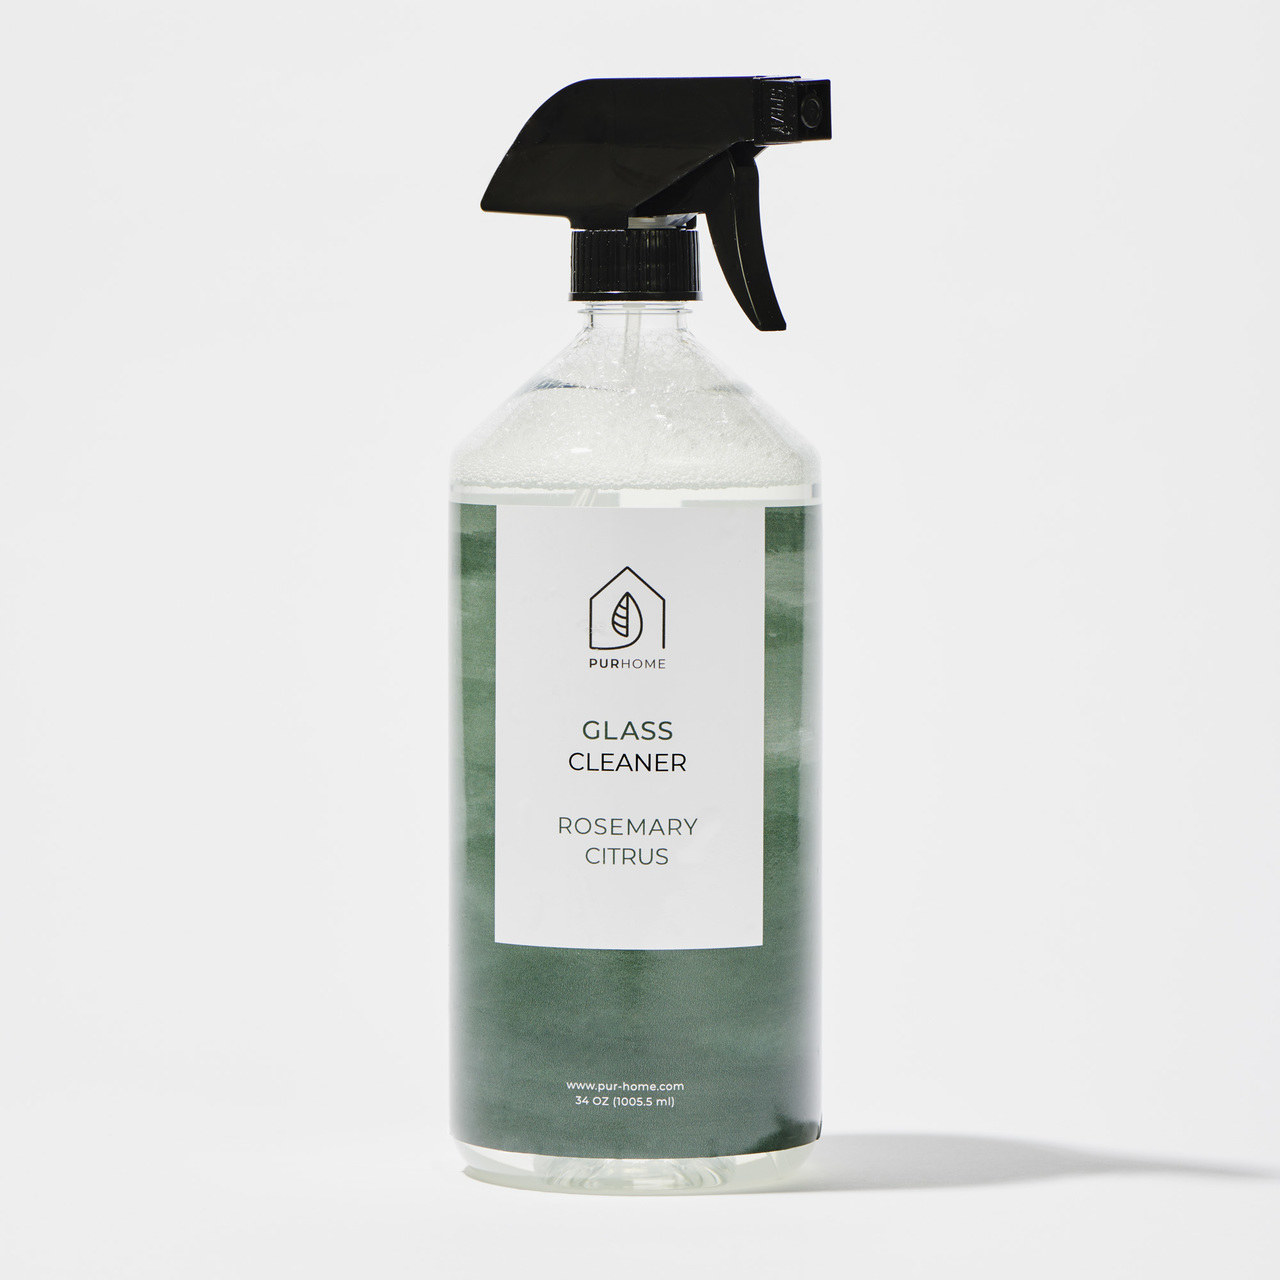 spray bottle of rosemary citrus glass cleaner